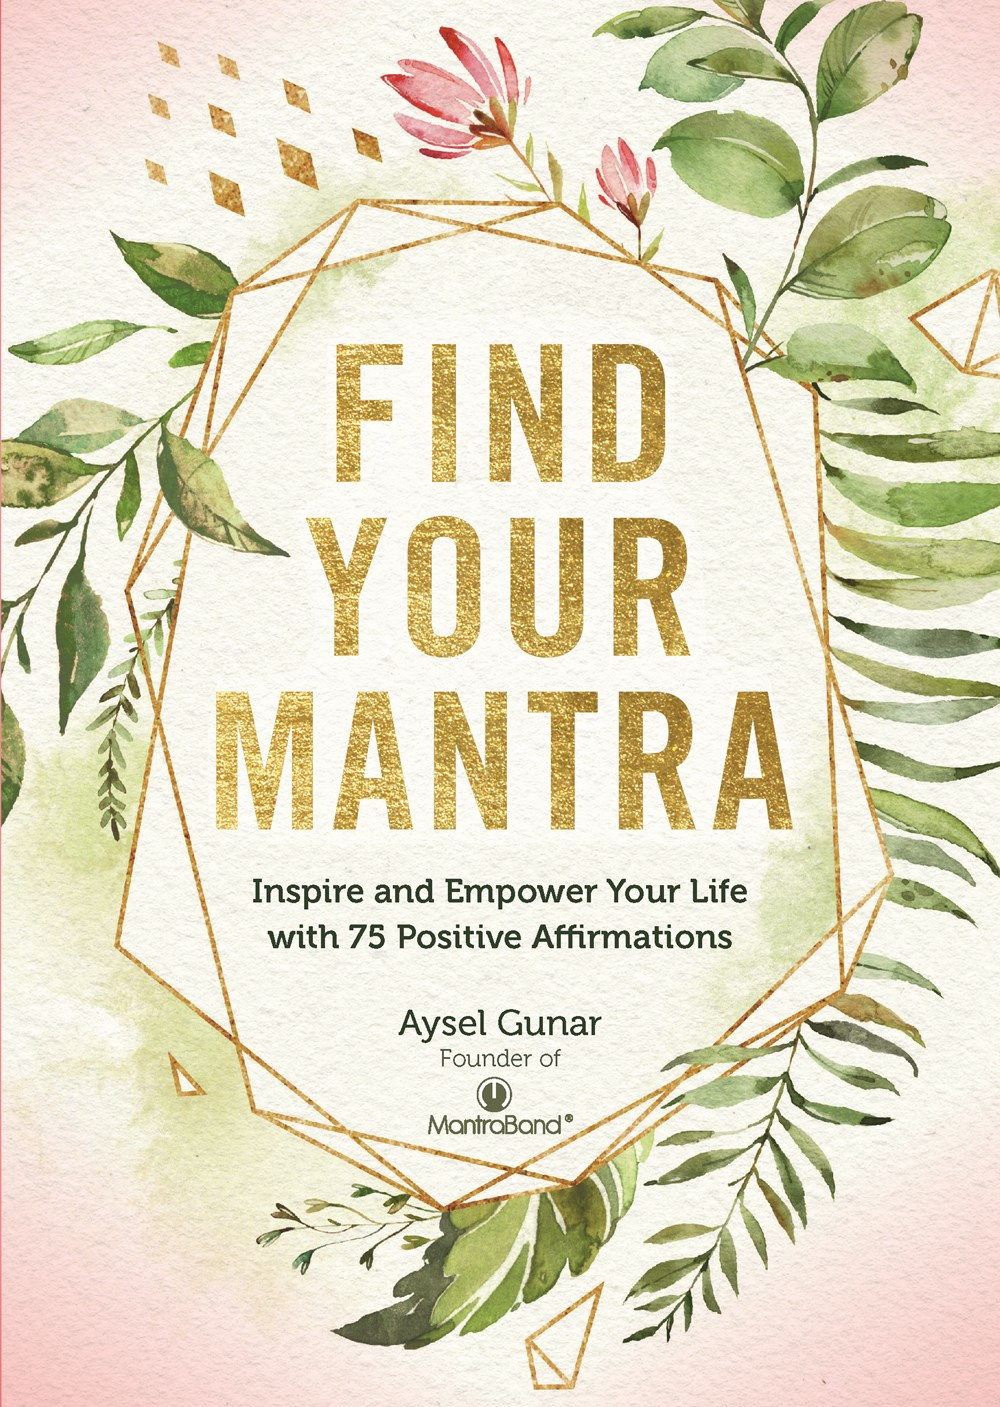 Find Your Mantra - Be mindful and present in your daily life with these 75 uplifting messages, organized by theme. Founder of MantraBand Aysel Gunar provides an inspiring introduction on the importance of positive, meaningful mantras in your life.Whether your focus is peace, love, happiness, strength, or your journey—you'll find the perfect mantra for every day of your life.Read more here!